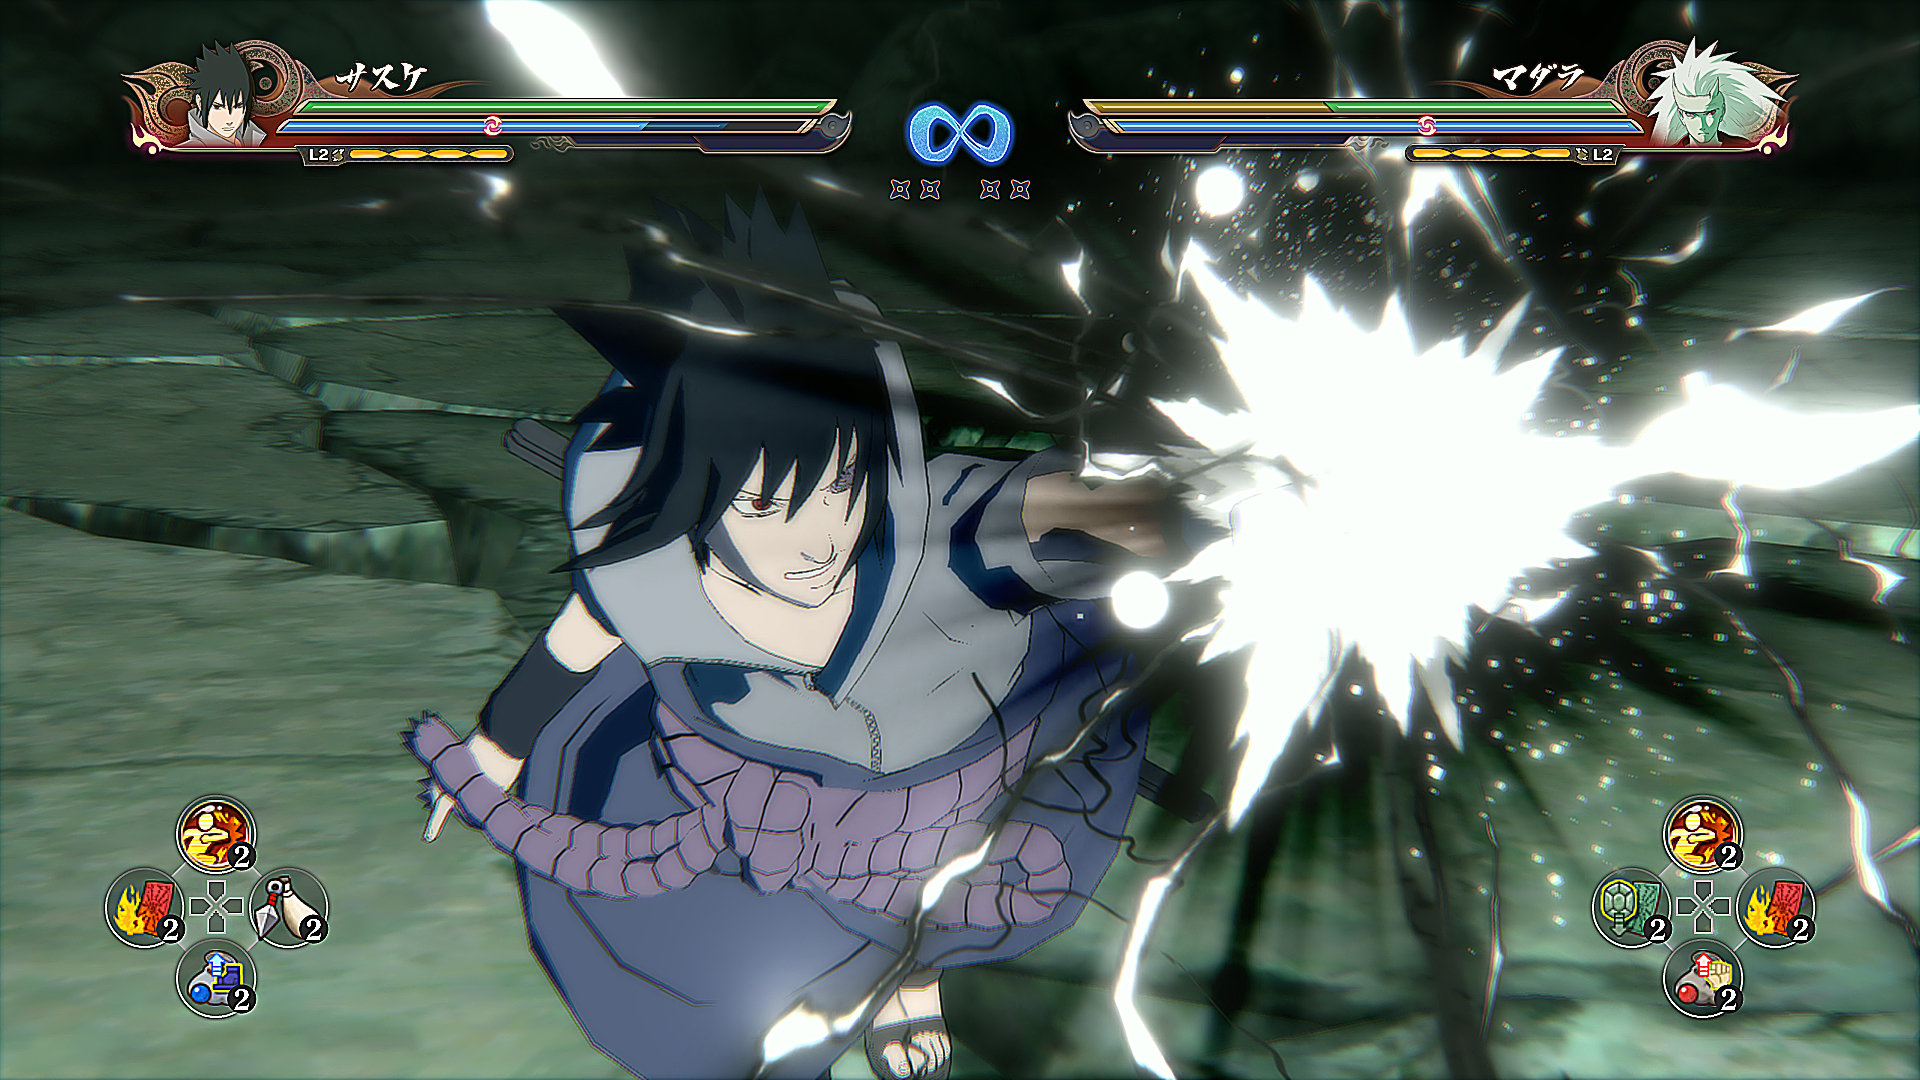 NARUTO SHIPPUDEN ULTIMATE NINJA STORM 4 Game